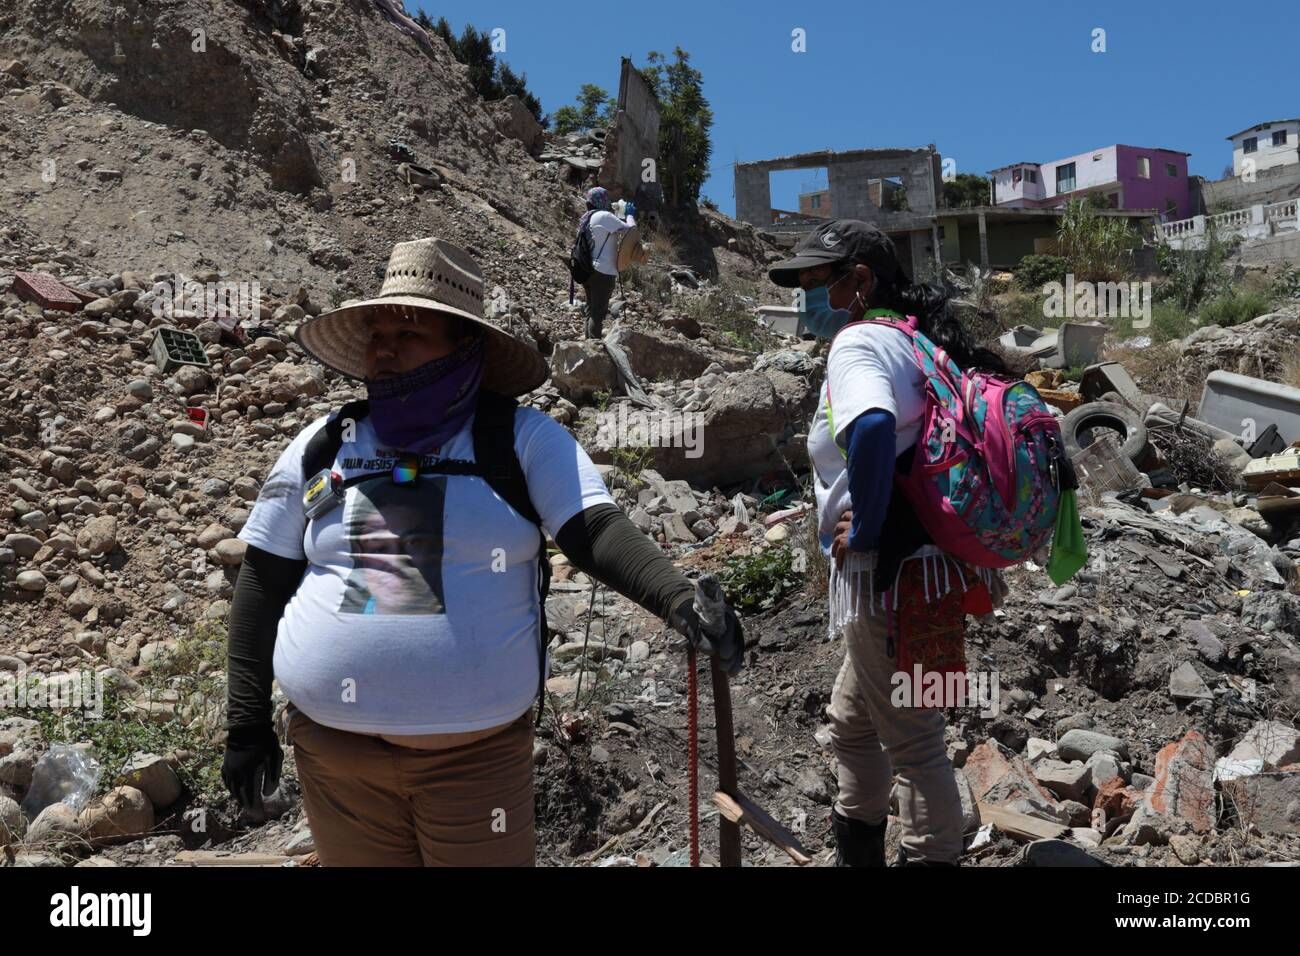 """August 10, the collective for the search for disappeared persons """"A nation looking for you"""" based in Tijuana, Baja California, found eight bodies Stock Photo"""